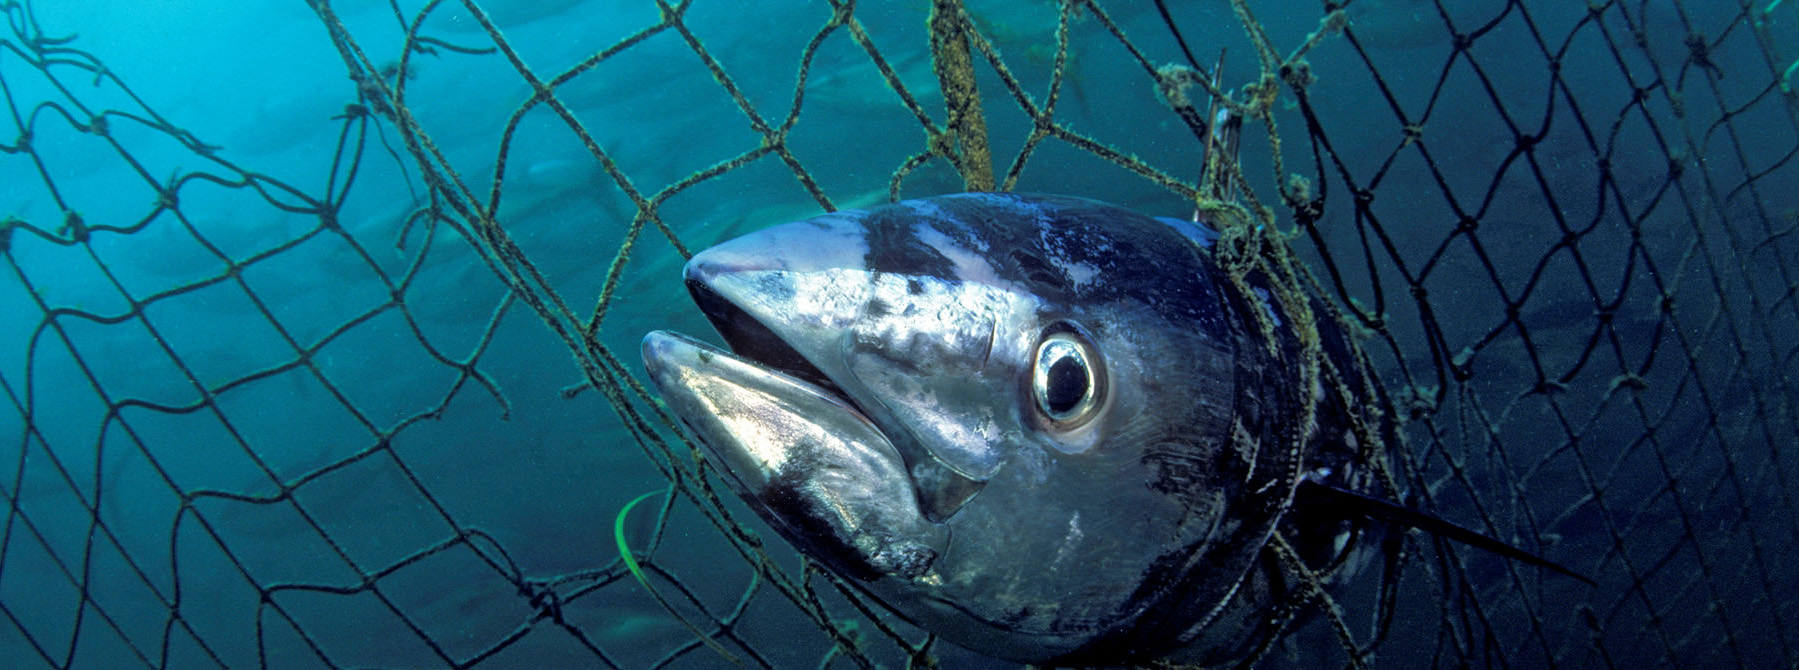 Southern Bluefin Tuna Thunnus maccoyii caught in a tuna pen, Port Lincoln, South Australia © naturepl.com / David Fleetham / WWF